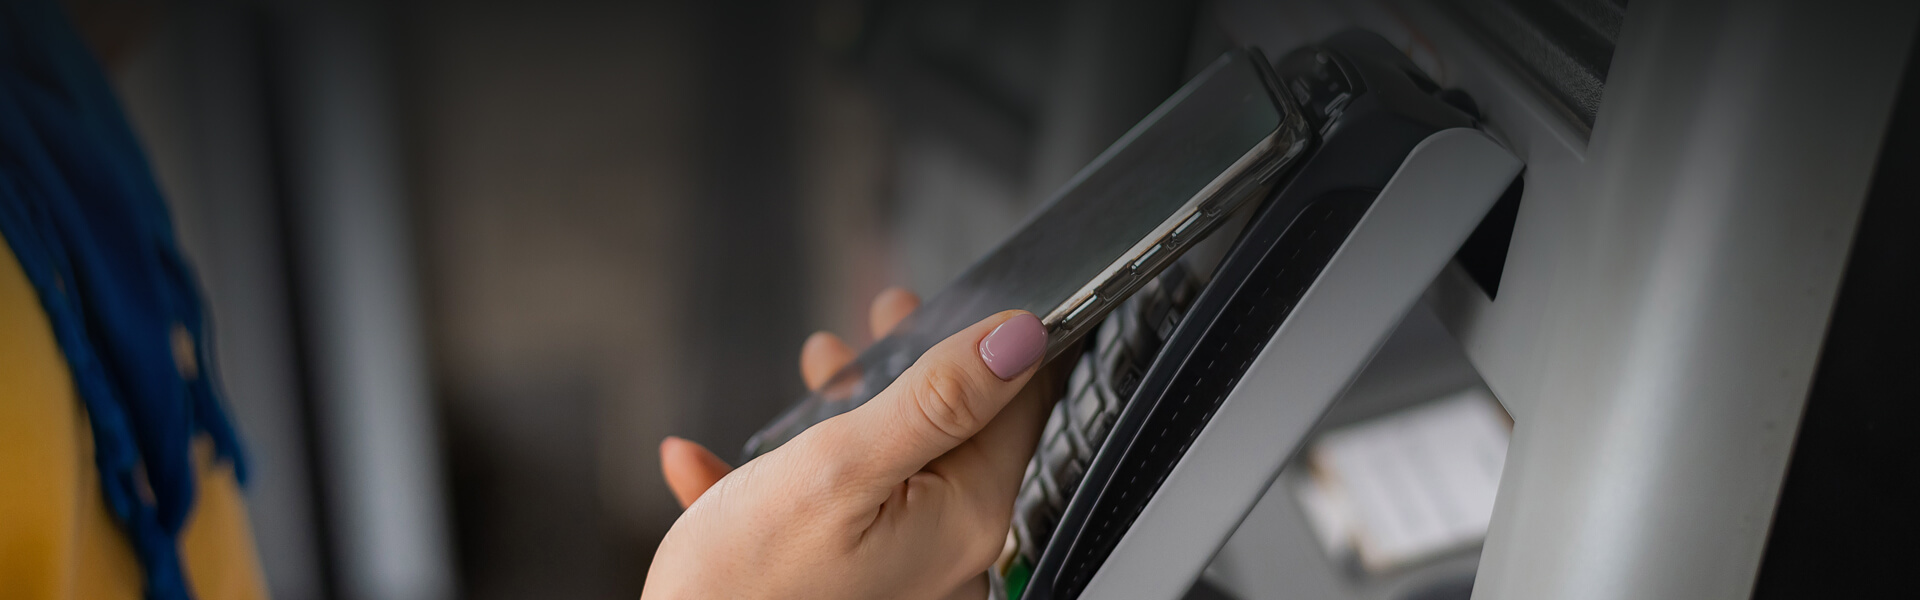 Reimagining Branch Ops for a Contactless Customer and Employee Experience with a Solution Construct